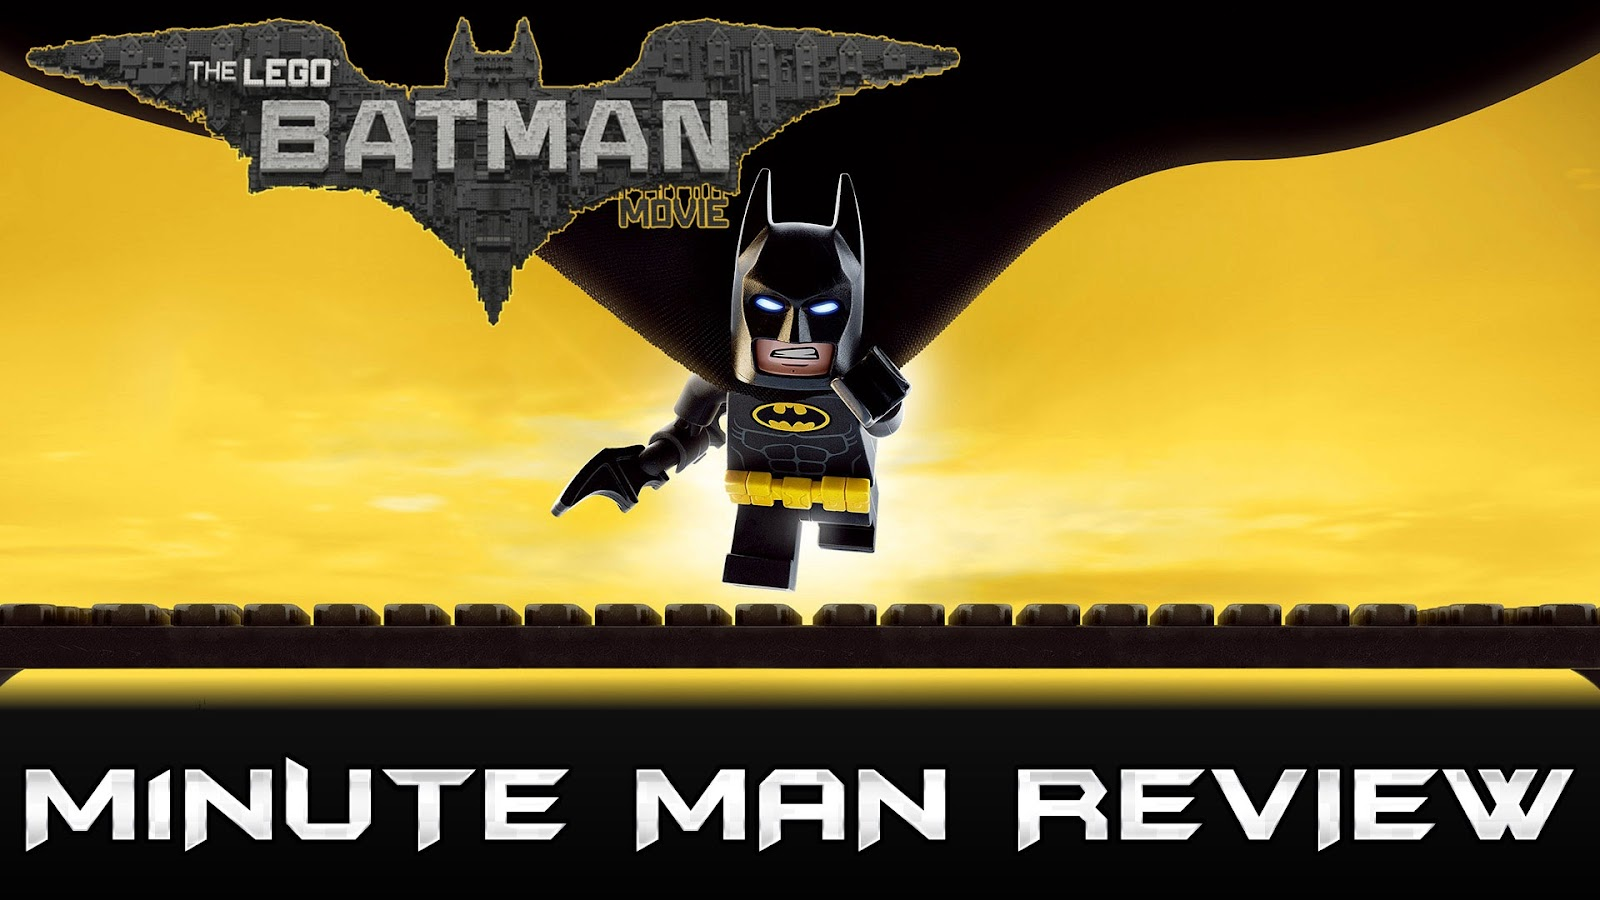 movie review THE LEGO BATMAN MOVIE podcast